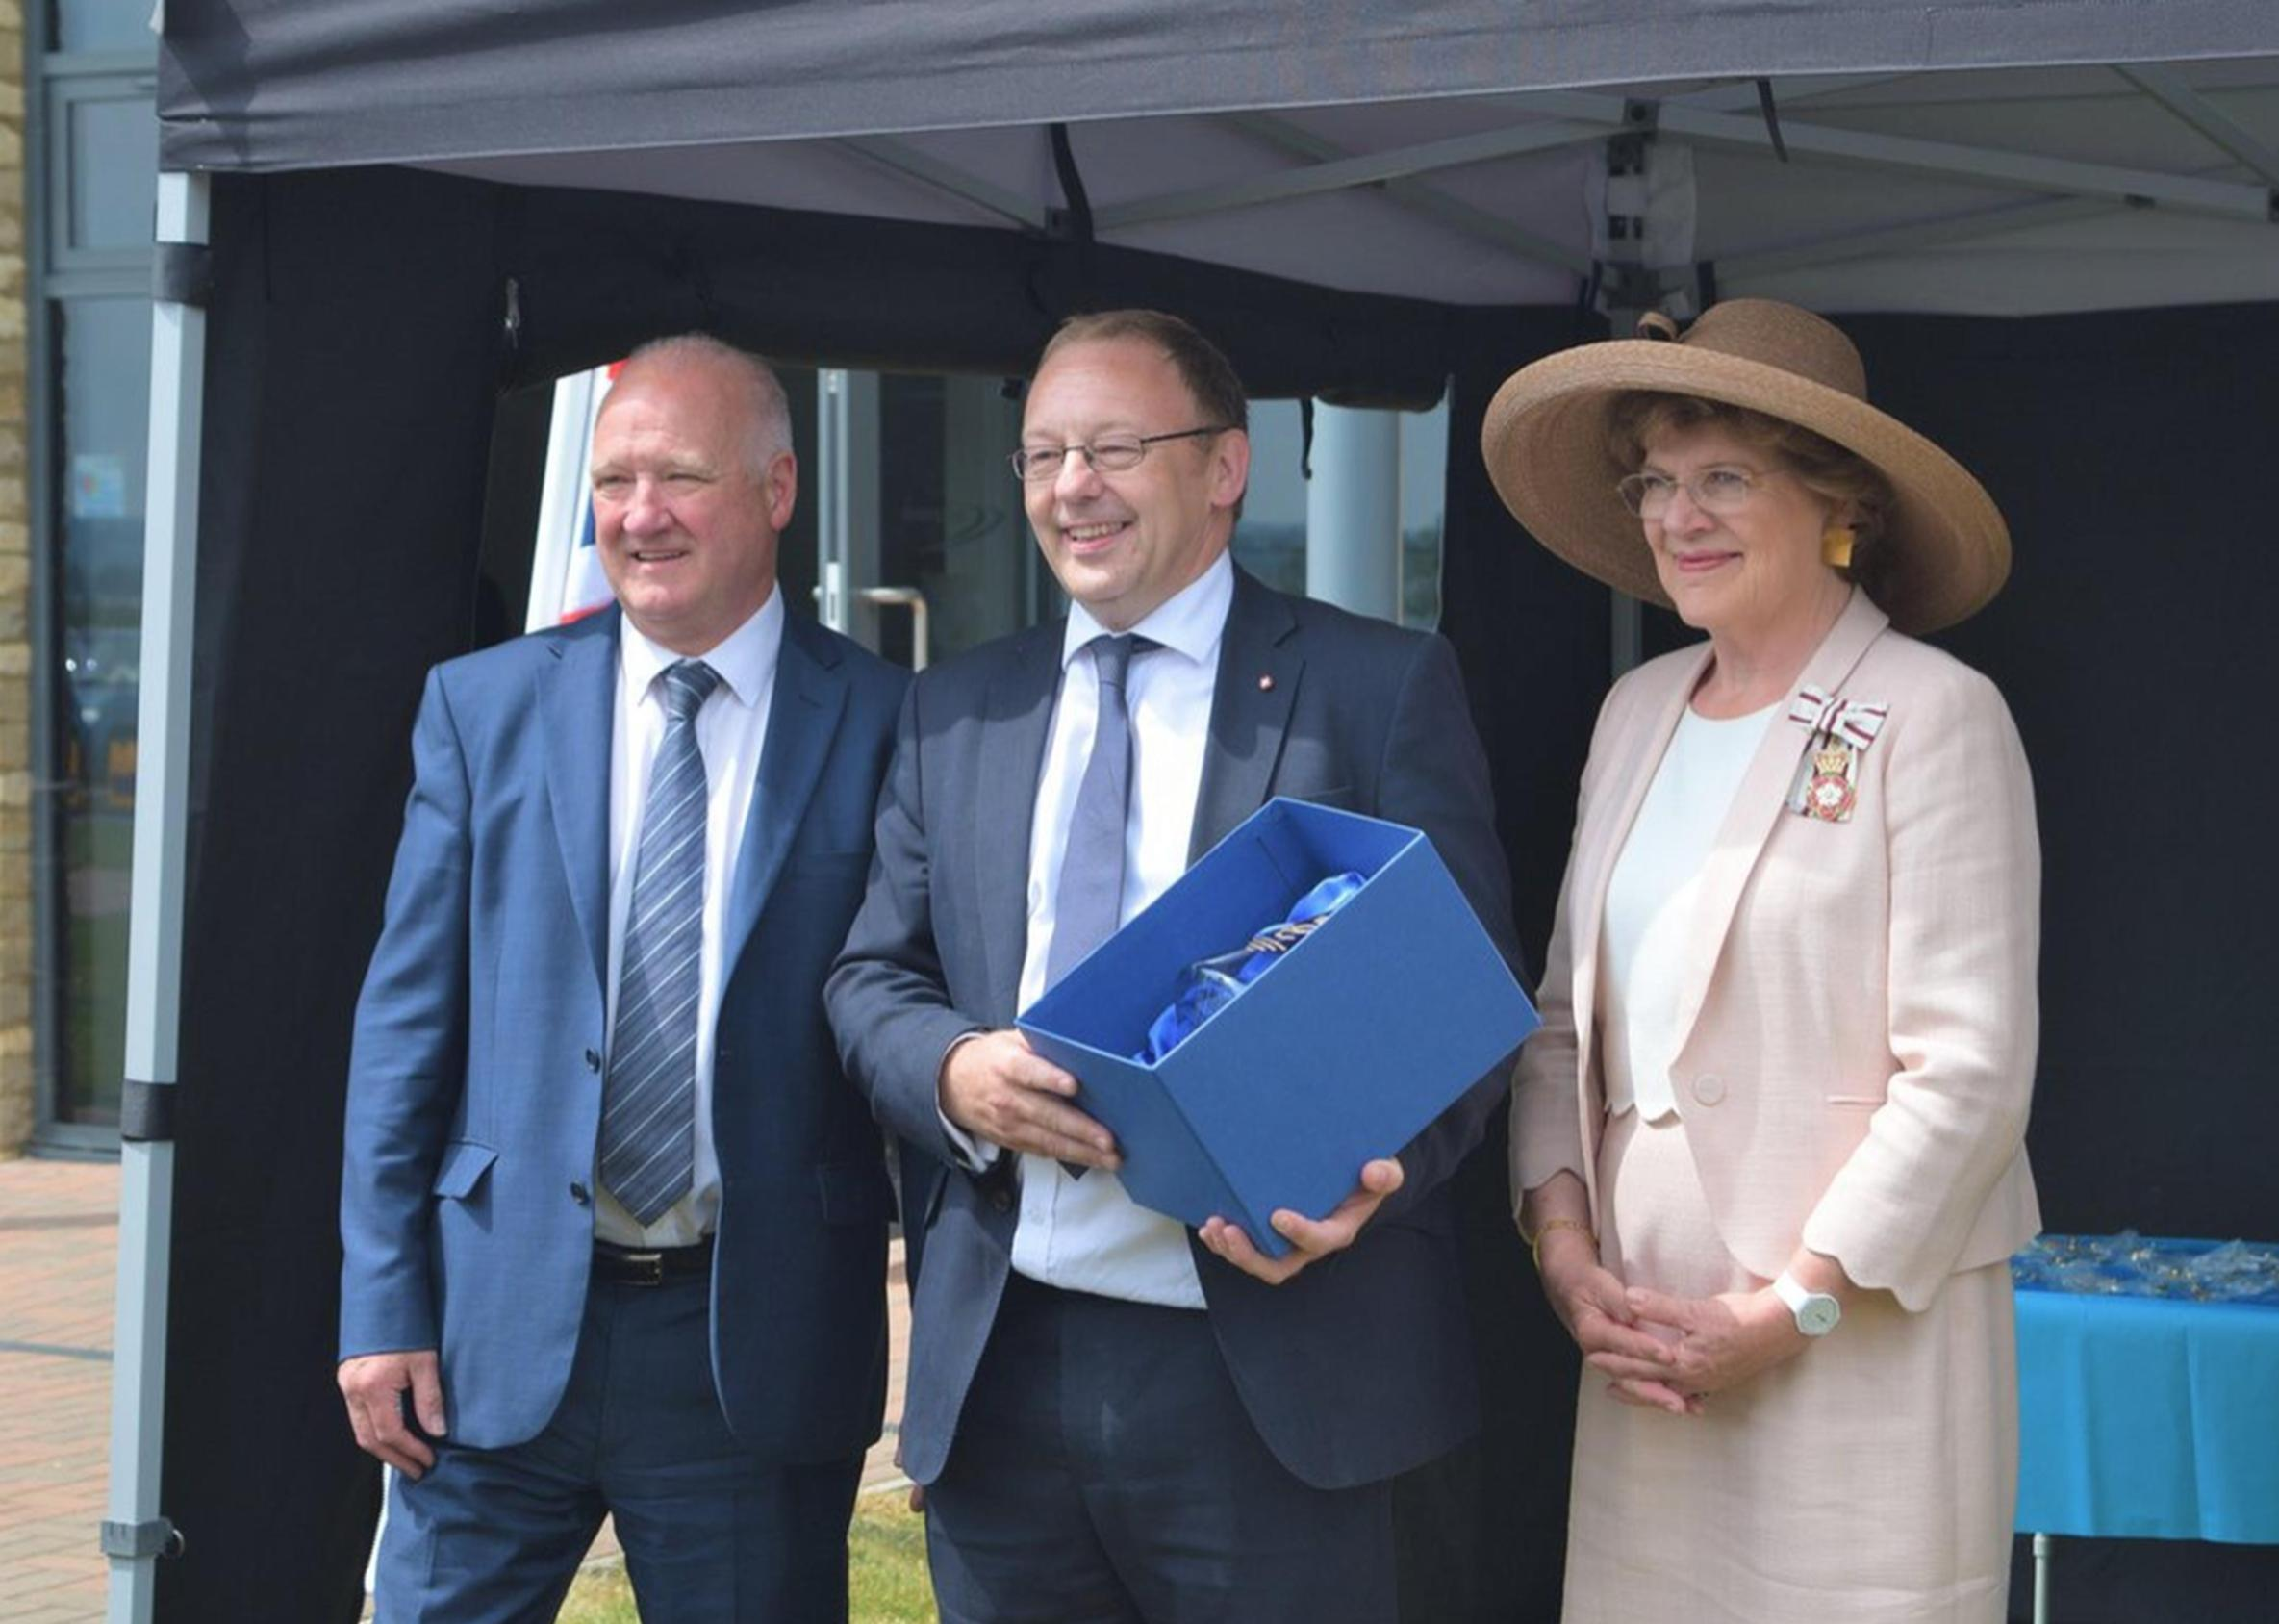 Wiltshire Council leader Philip Whitfield, Chipside chief executive Paul Moorby OBE and Sarah Rose Troughton, Lord-Lieutenant of Wiltshire